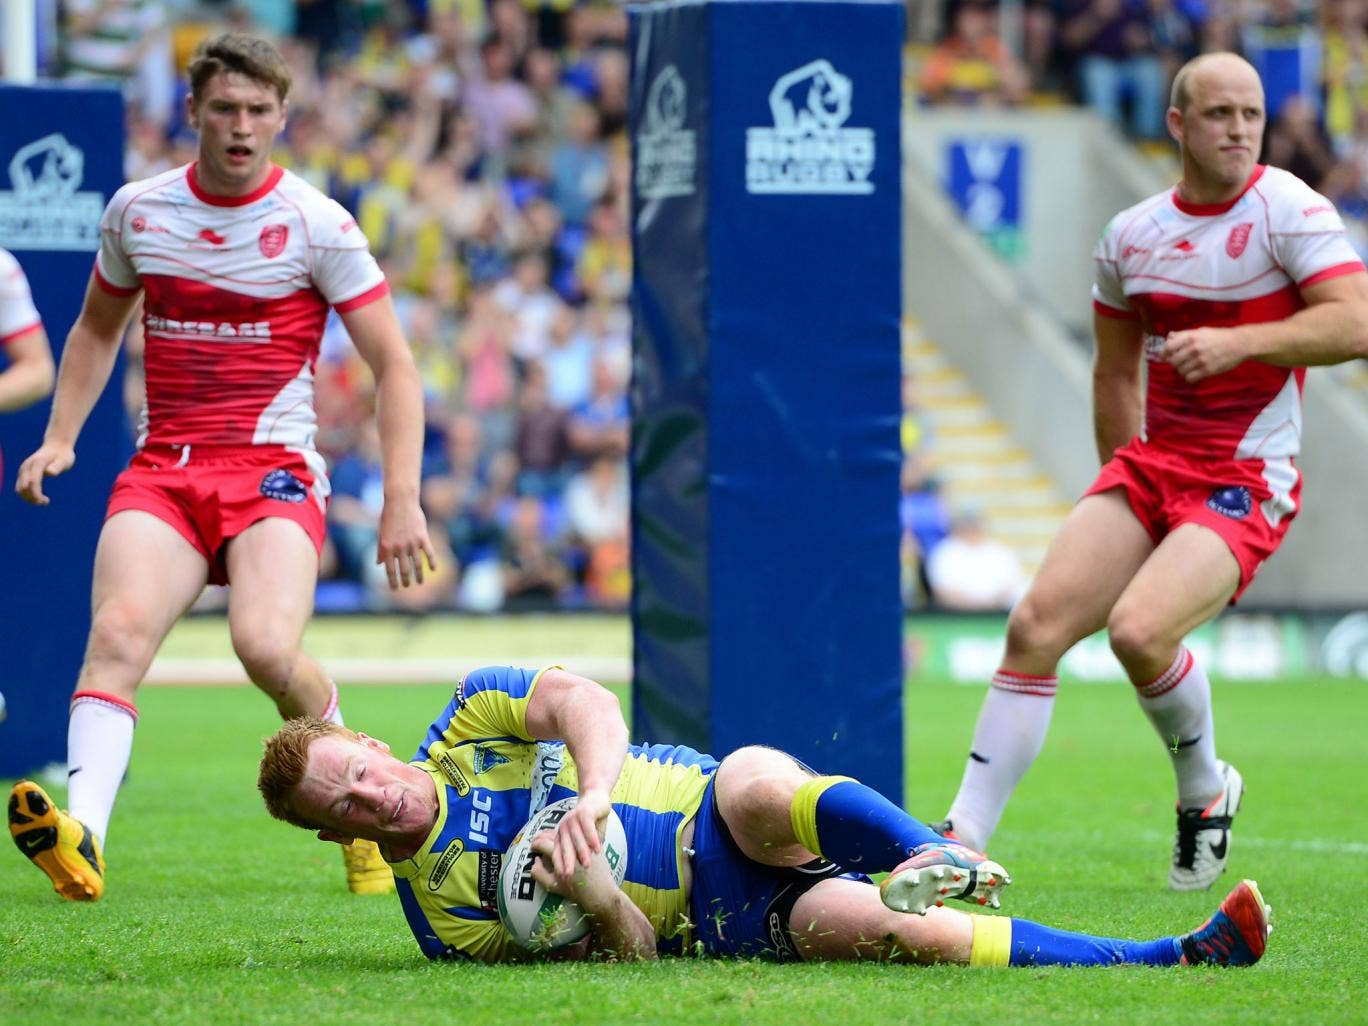 Warrington's Chris Riley goes over for a try